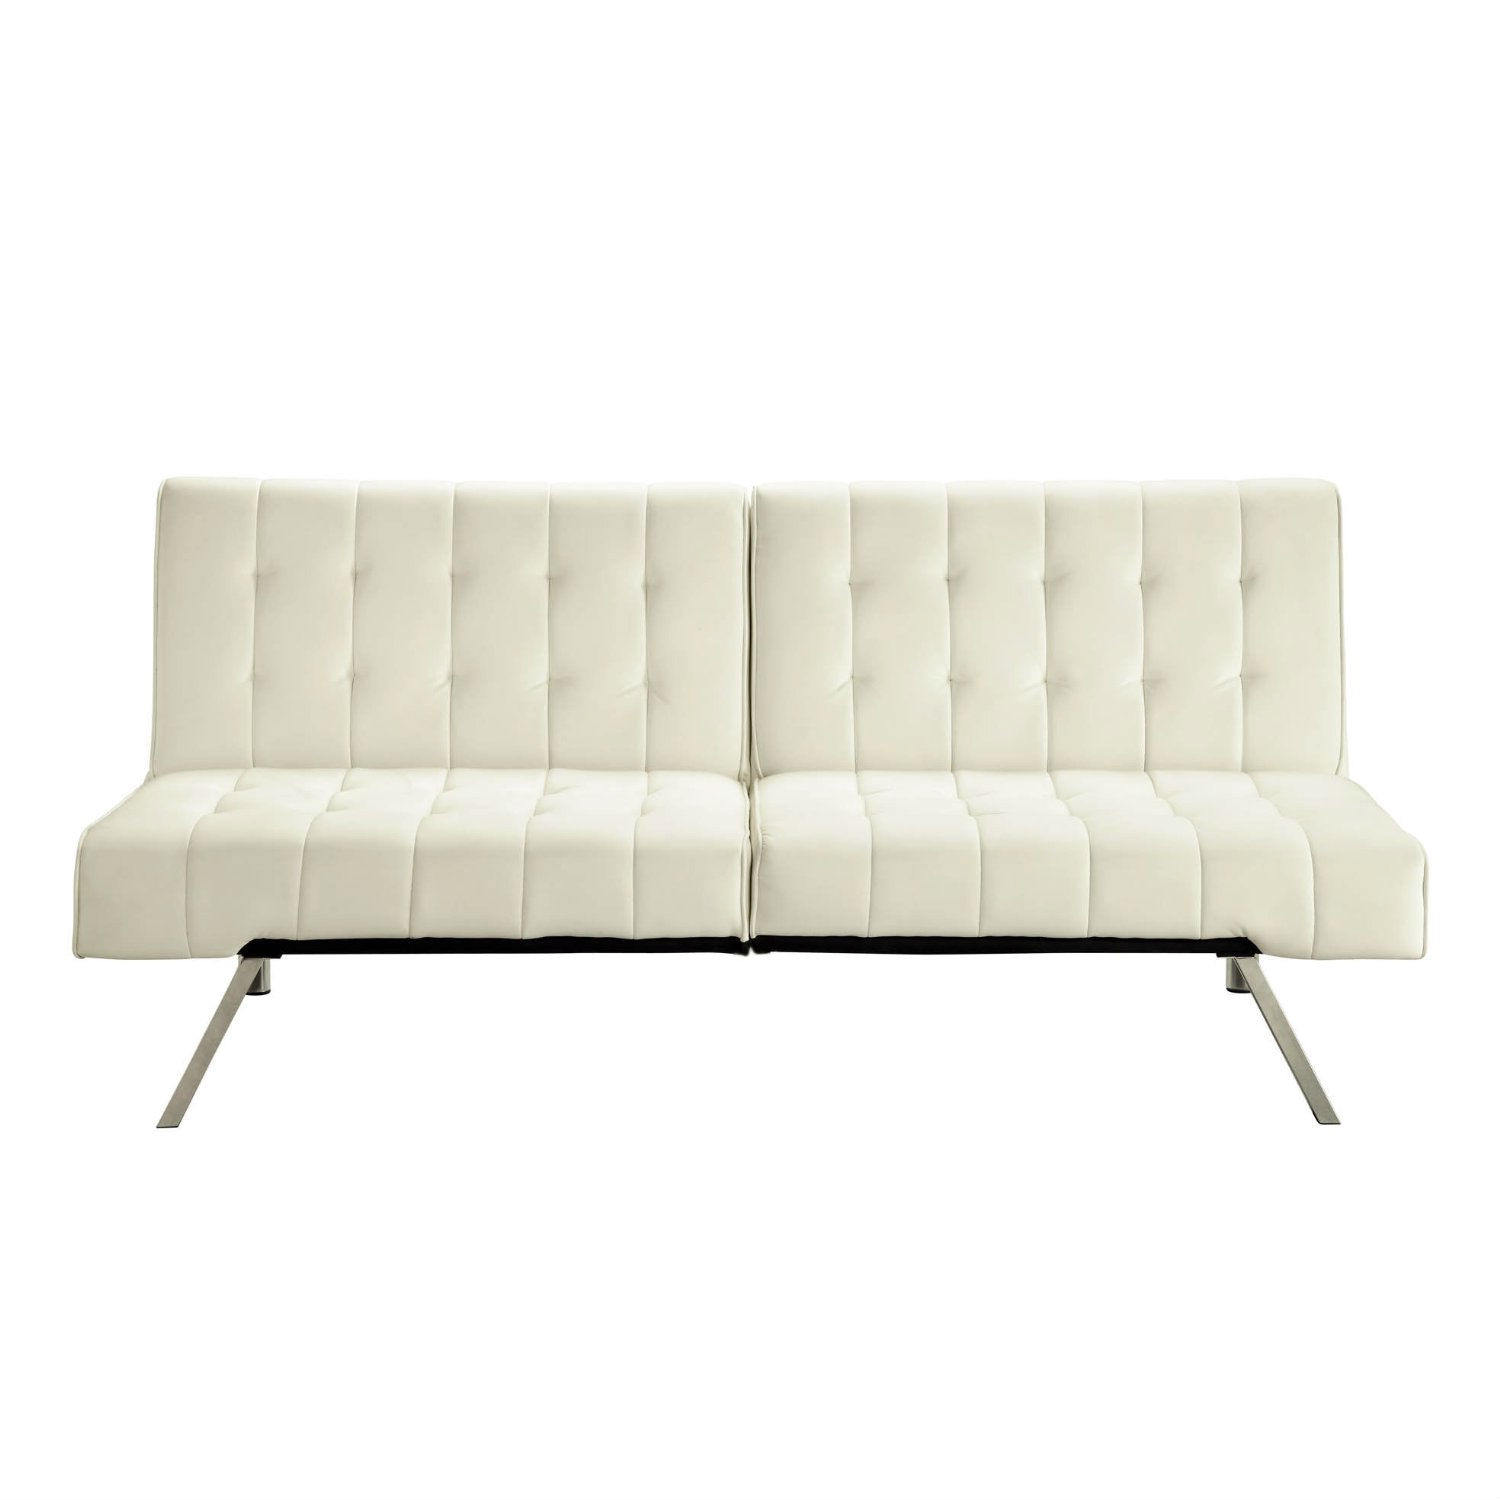 Split back Modern Futon Style Sleeper Sofa Bed in Vanilla Faux